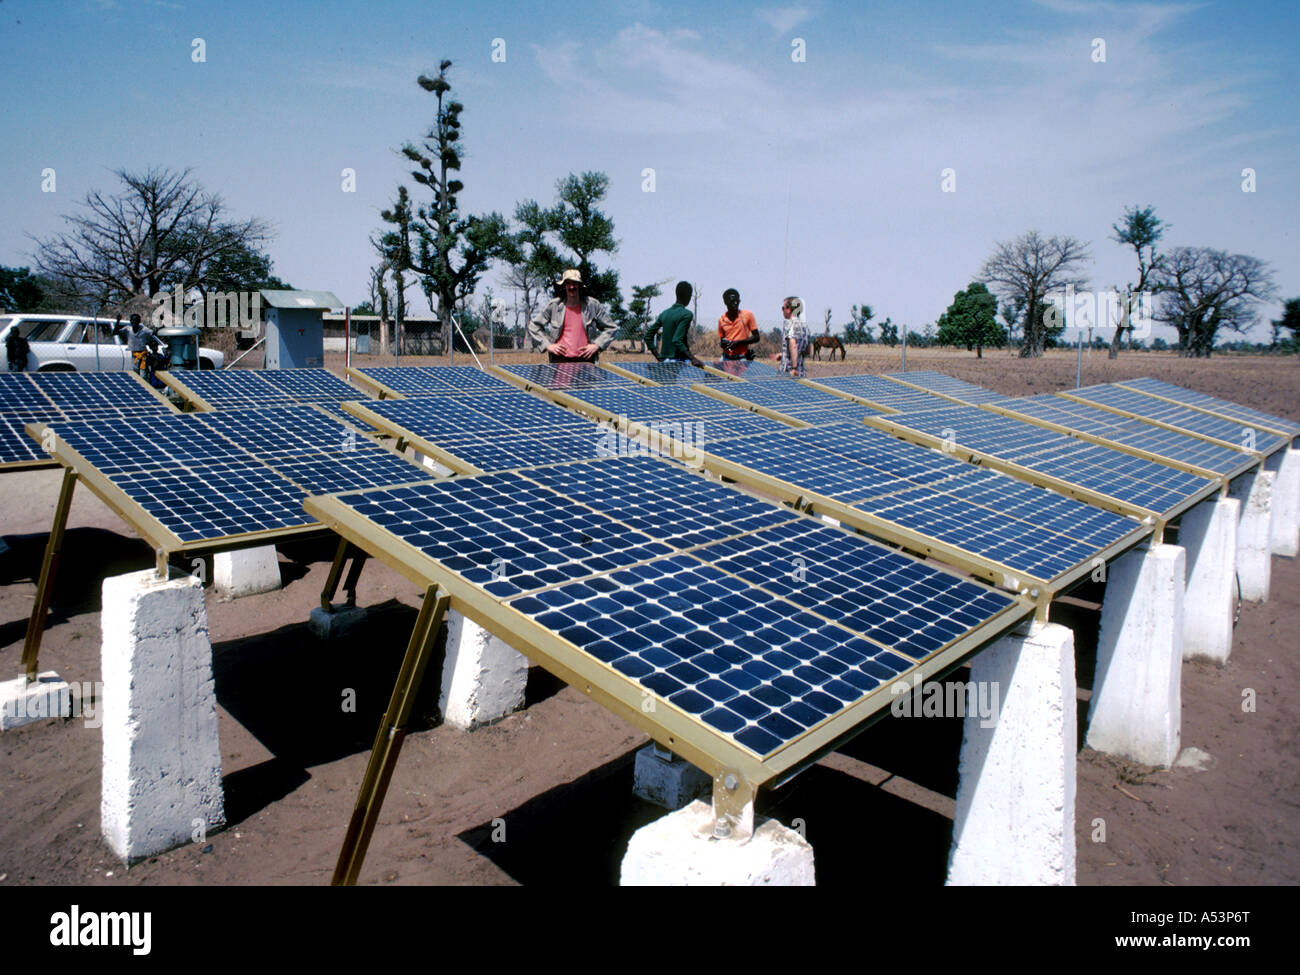 Painet ha1667 3362 technology solar voltaic panels thies senegal country developing nation less economically developed - Stock Image